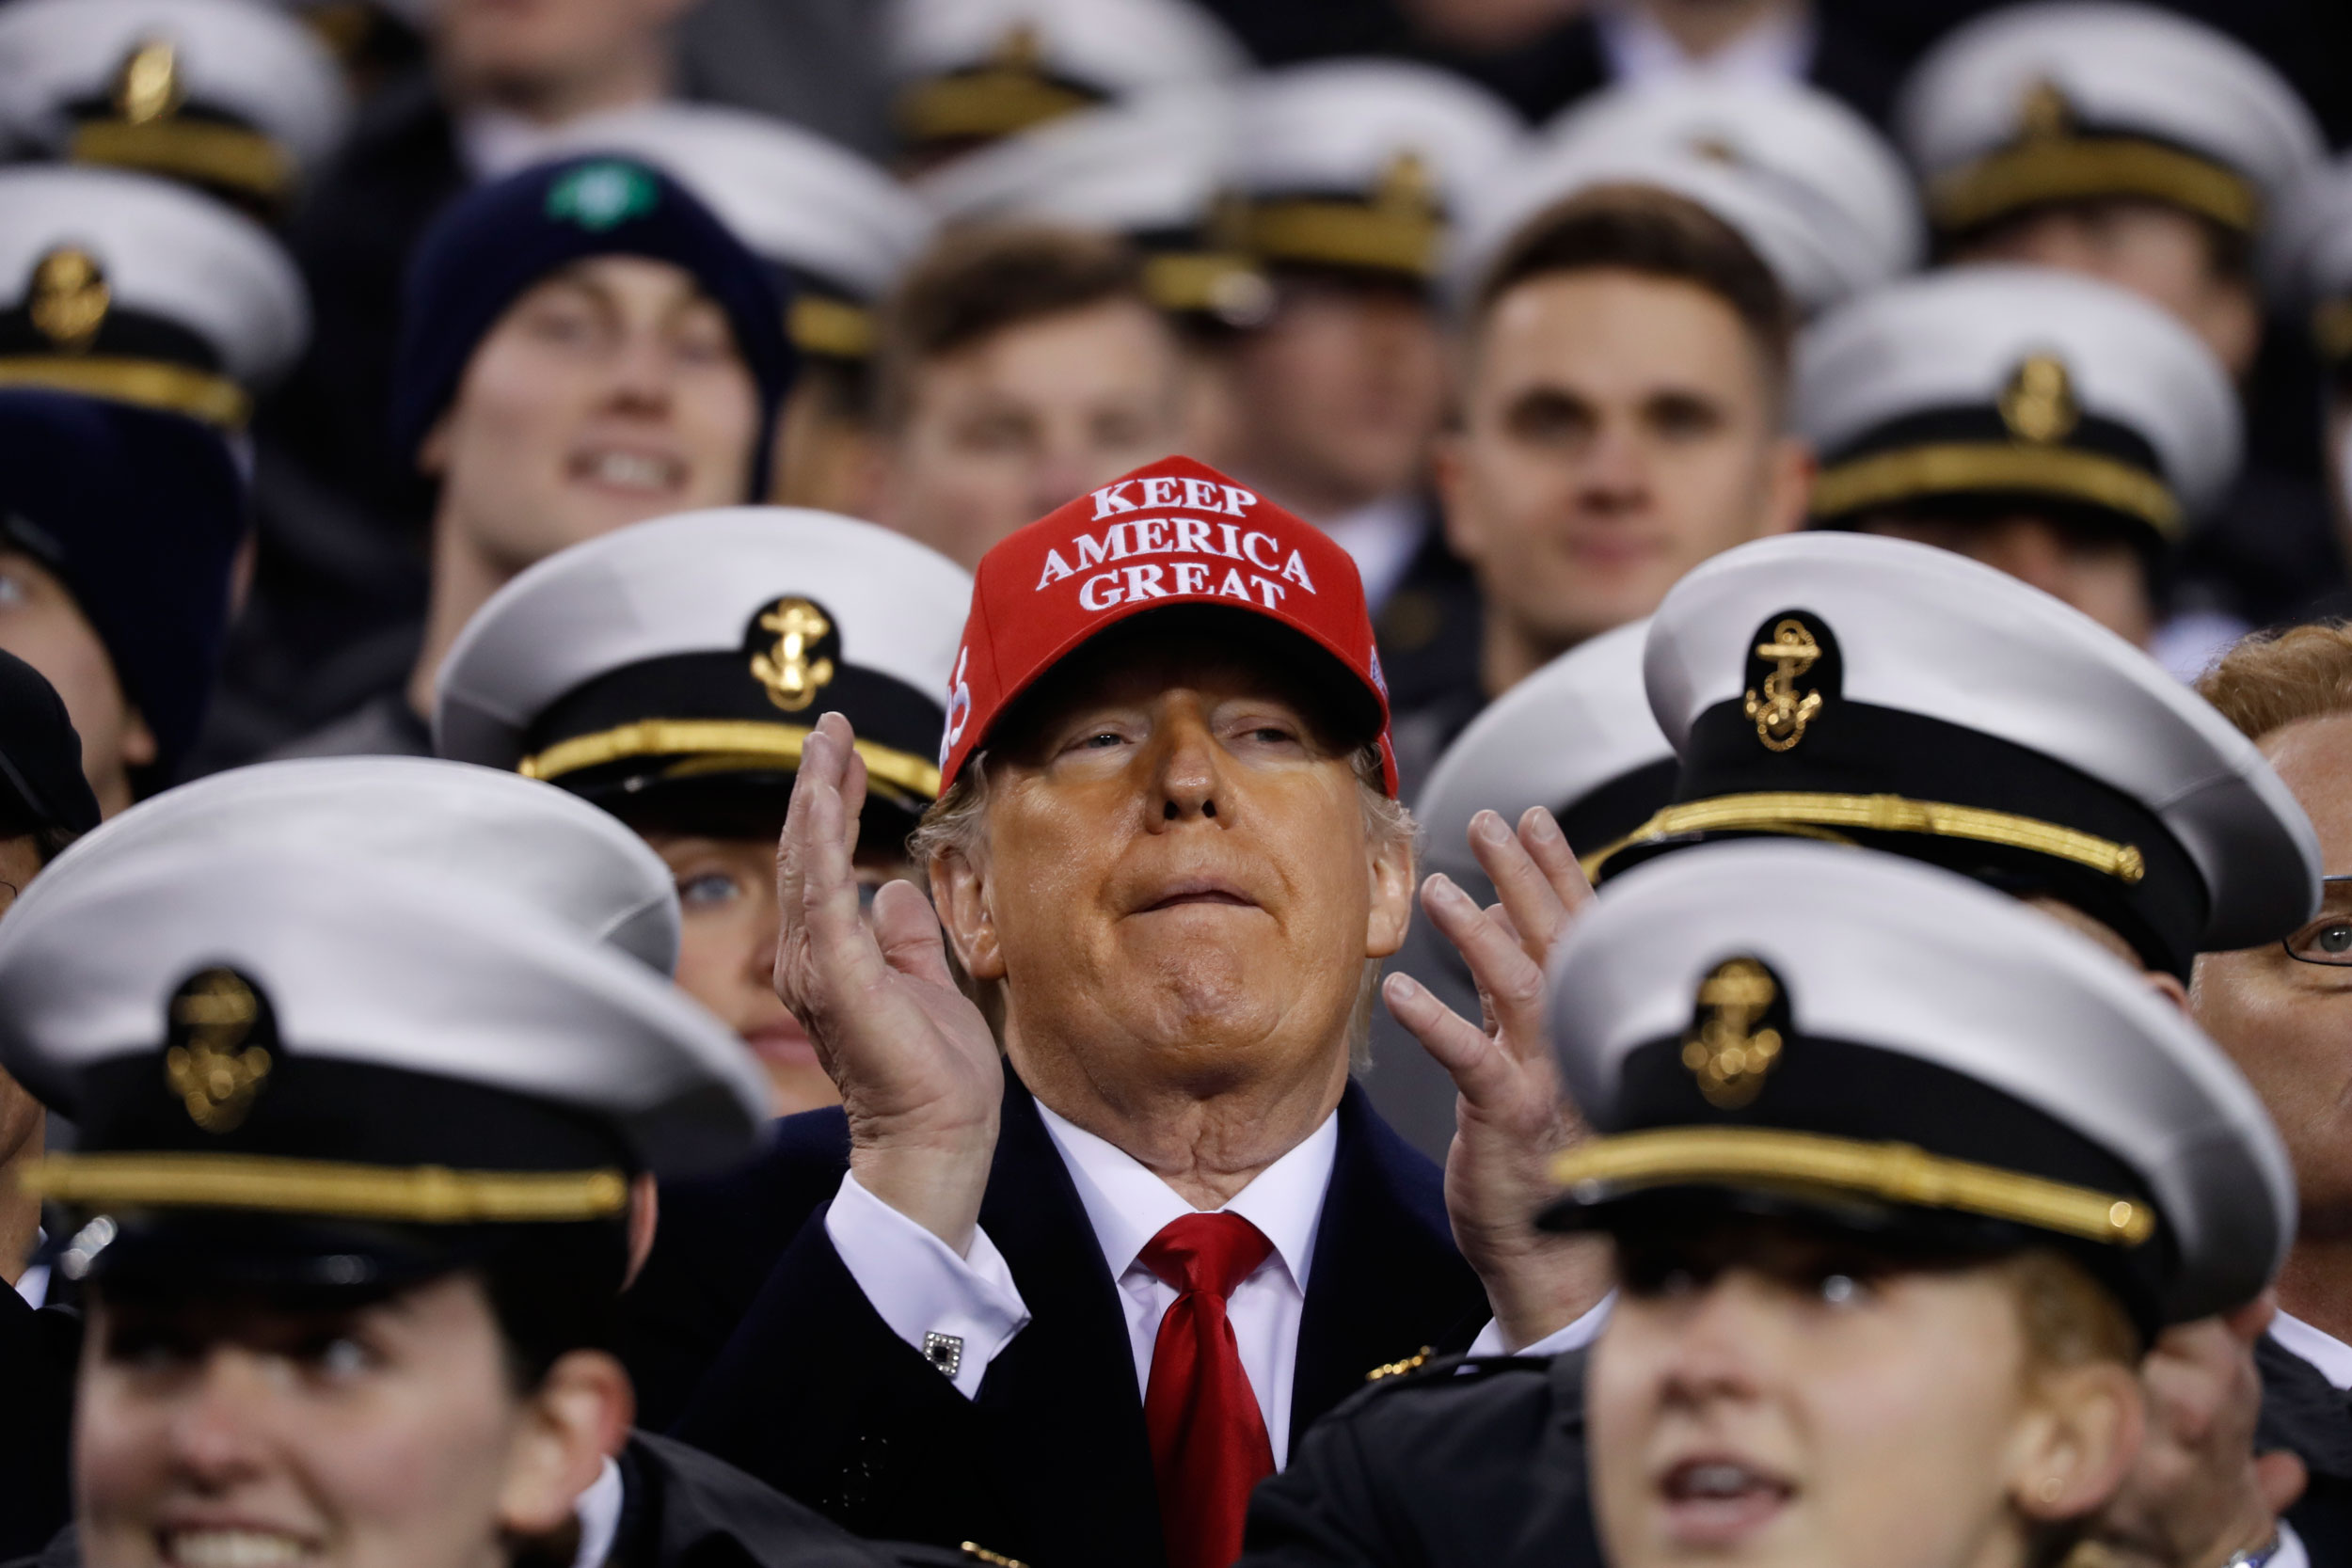 US President Donald Trump stands with the US Navy midshipmen before the start of an NCAA college football game between the Army and the Navy, on December 14, 2019, in Philadelphia. Trump faces little challenge to his re-nomination in the Republican Party.